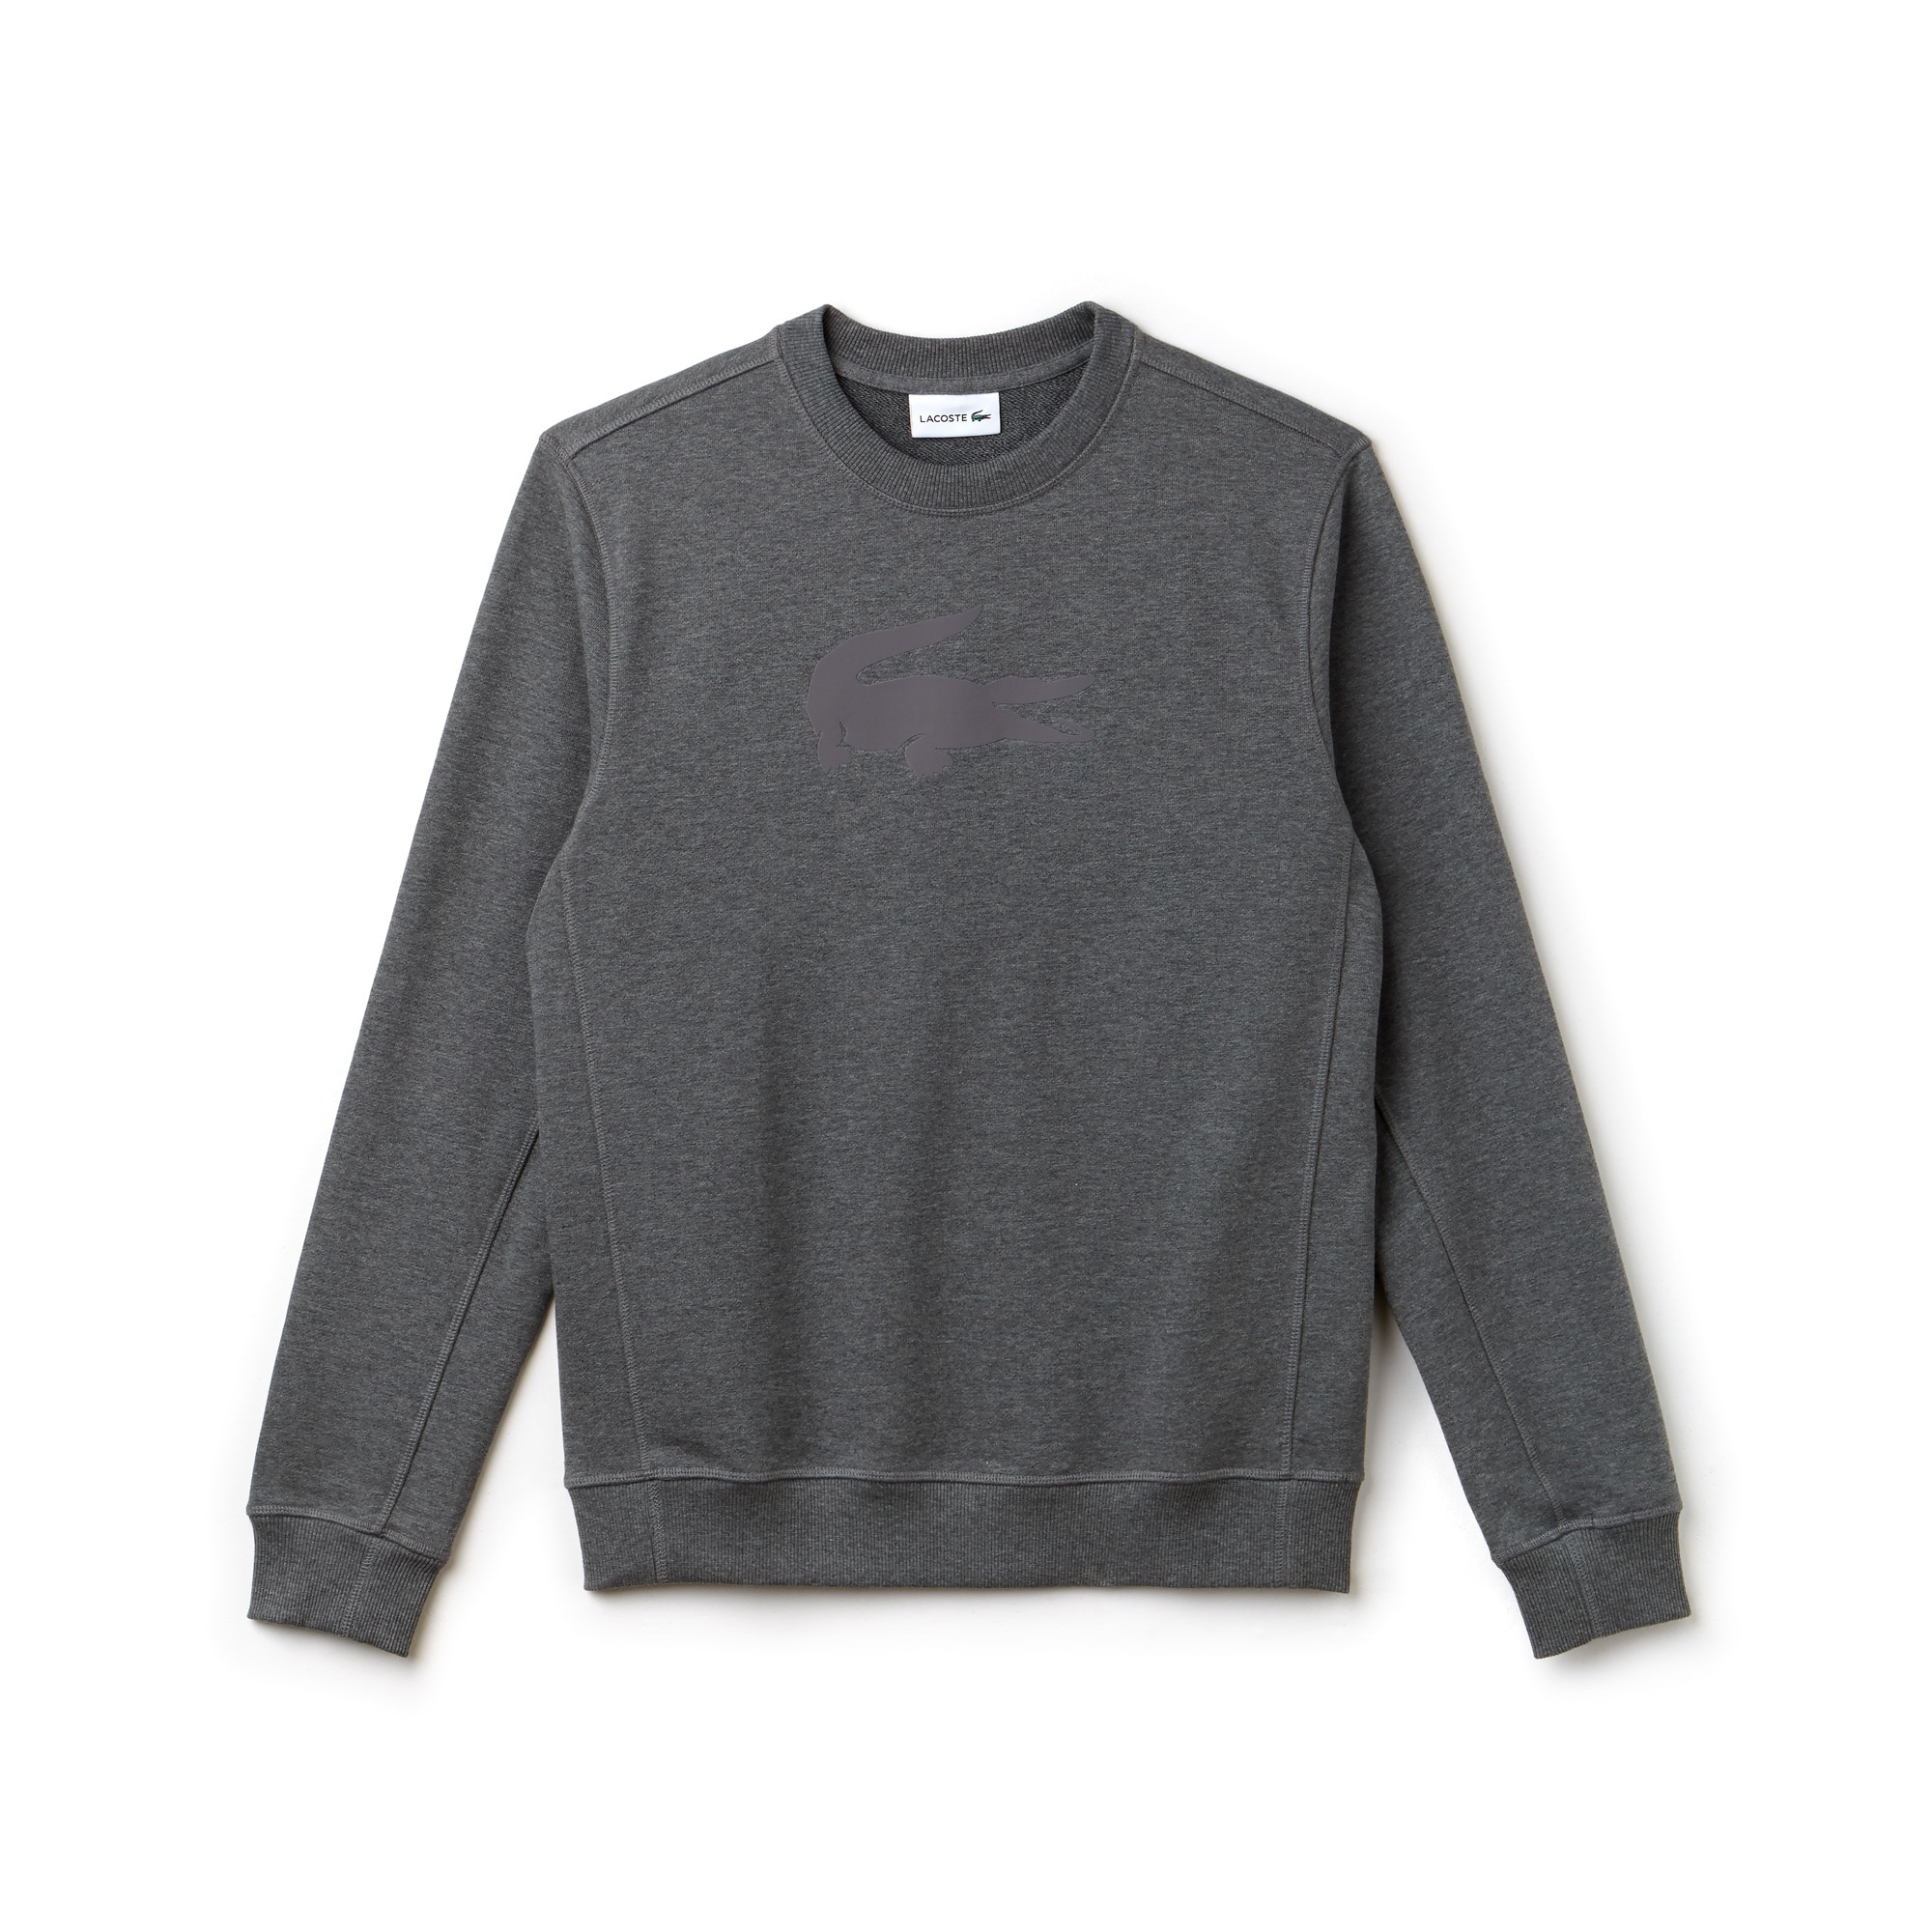 Men's Crocodile Print Sweatshirt